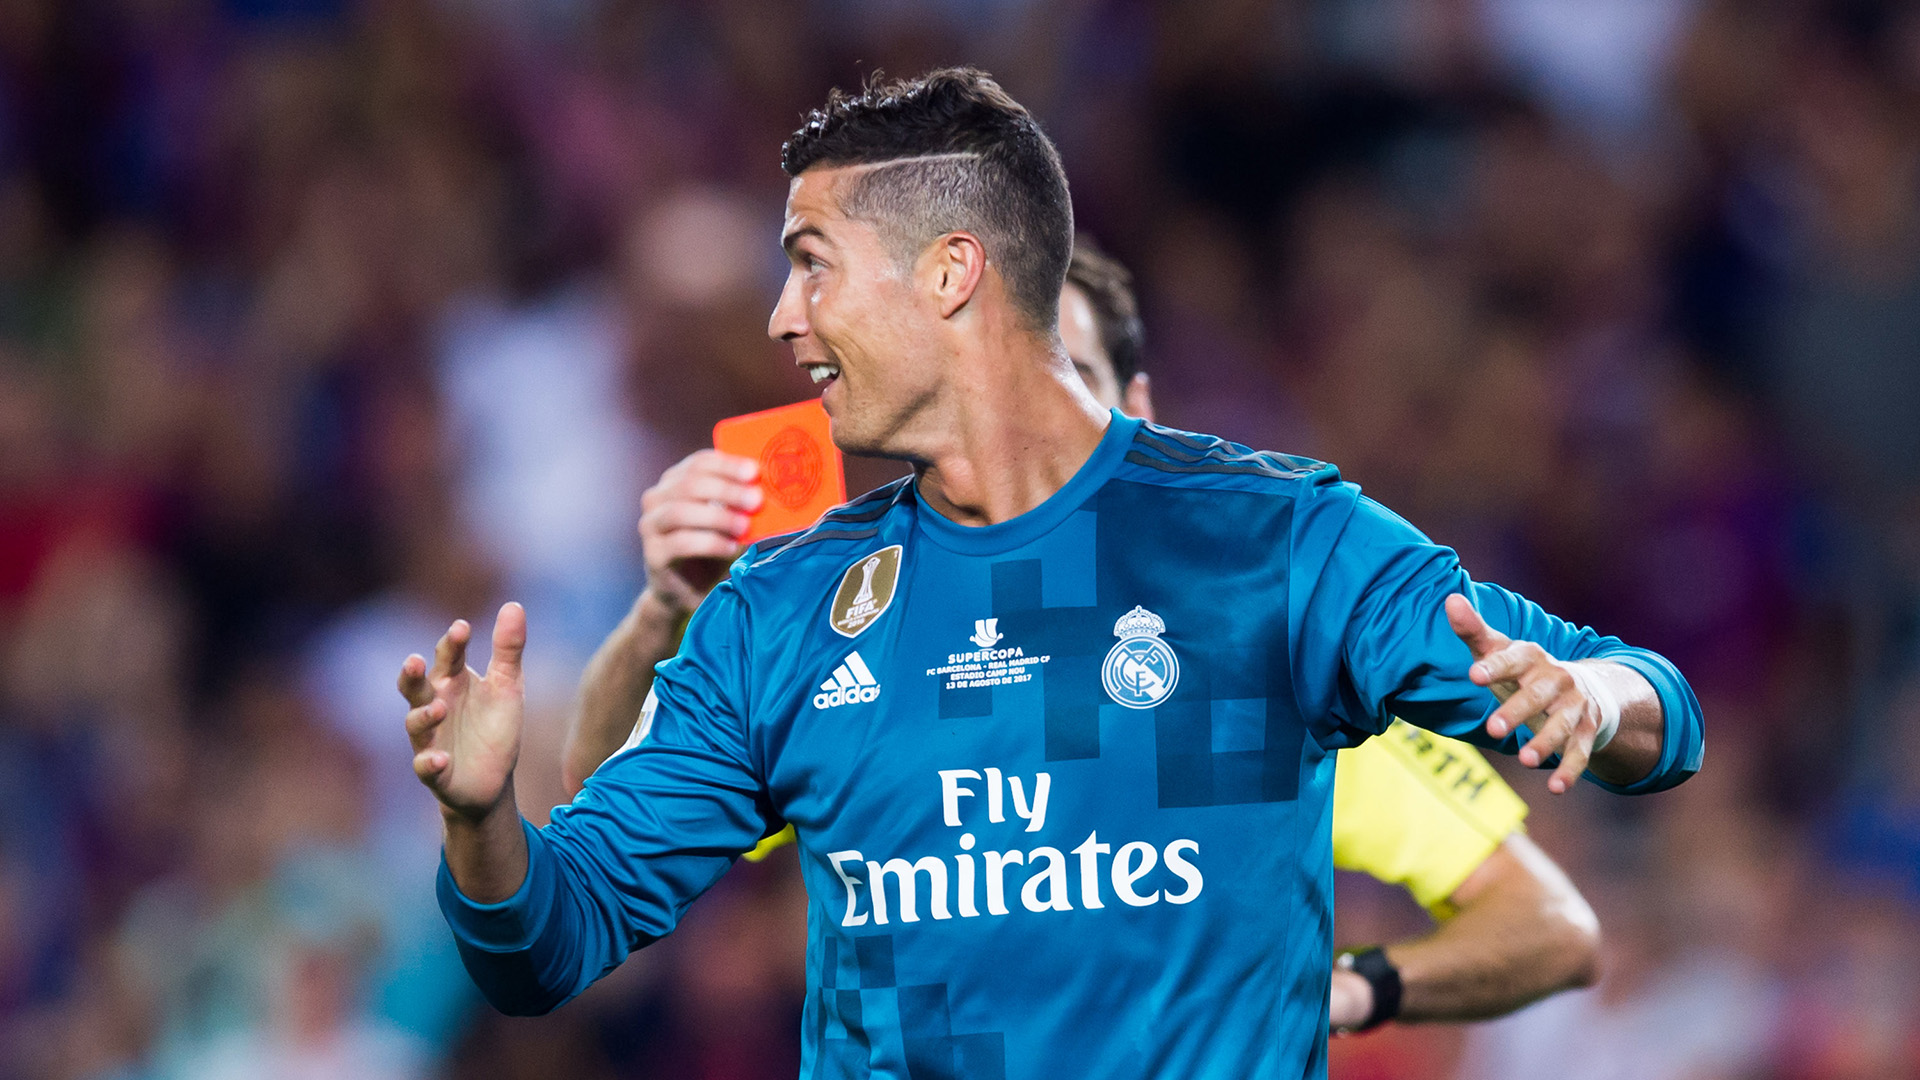 big sale 86c76 70257 Cristiano Ronaldo sensationally shoves referee after being ...